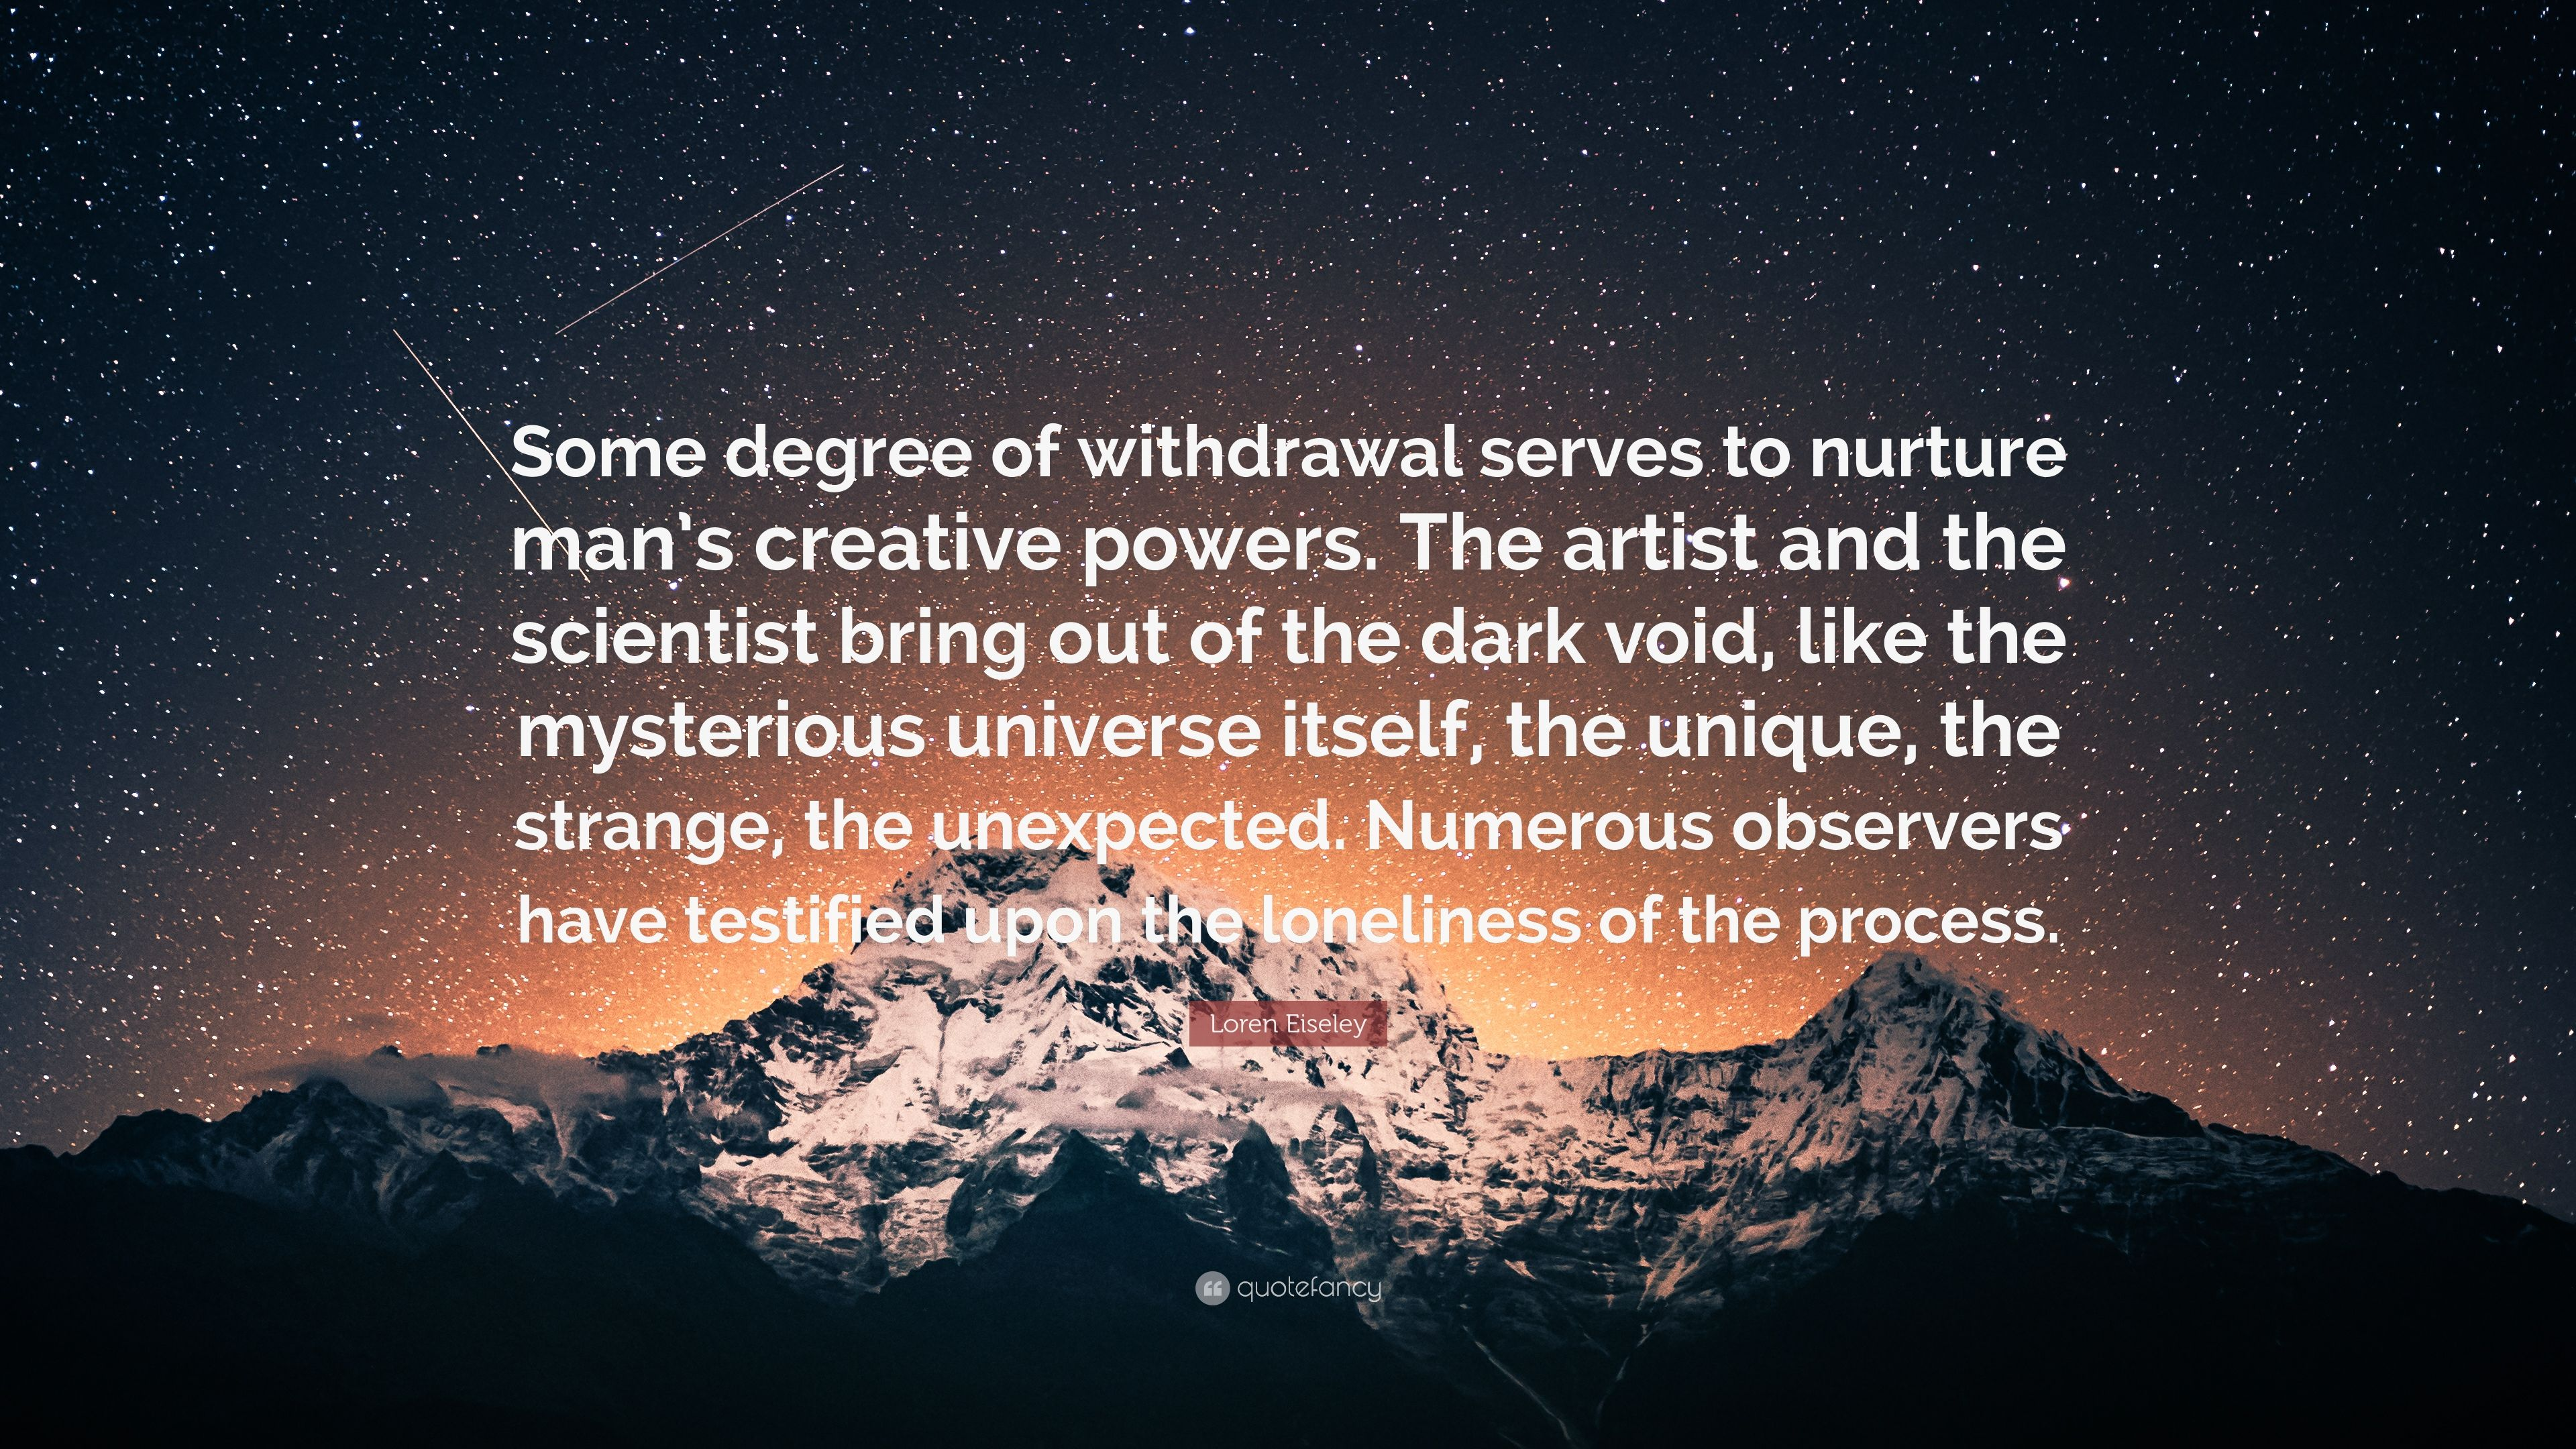 Loren Eiseley Quote Some Degree Of Withdrawal Serves To Nurture Mans Creative Powers